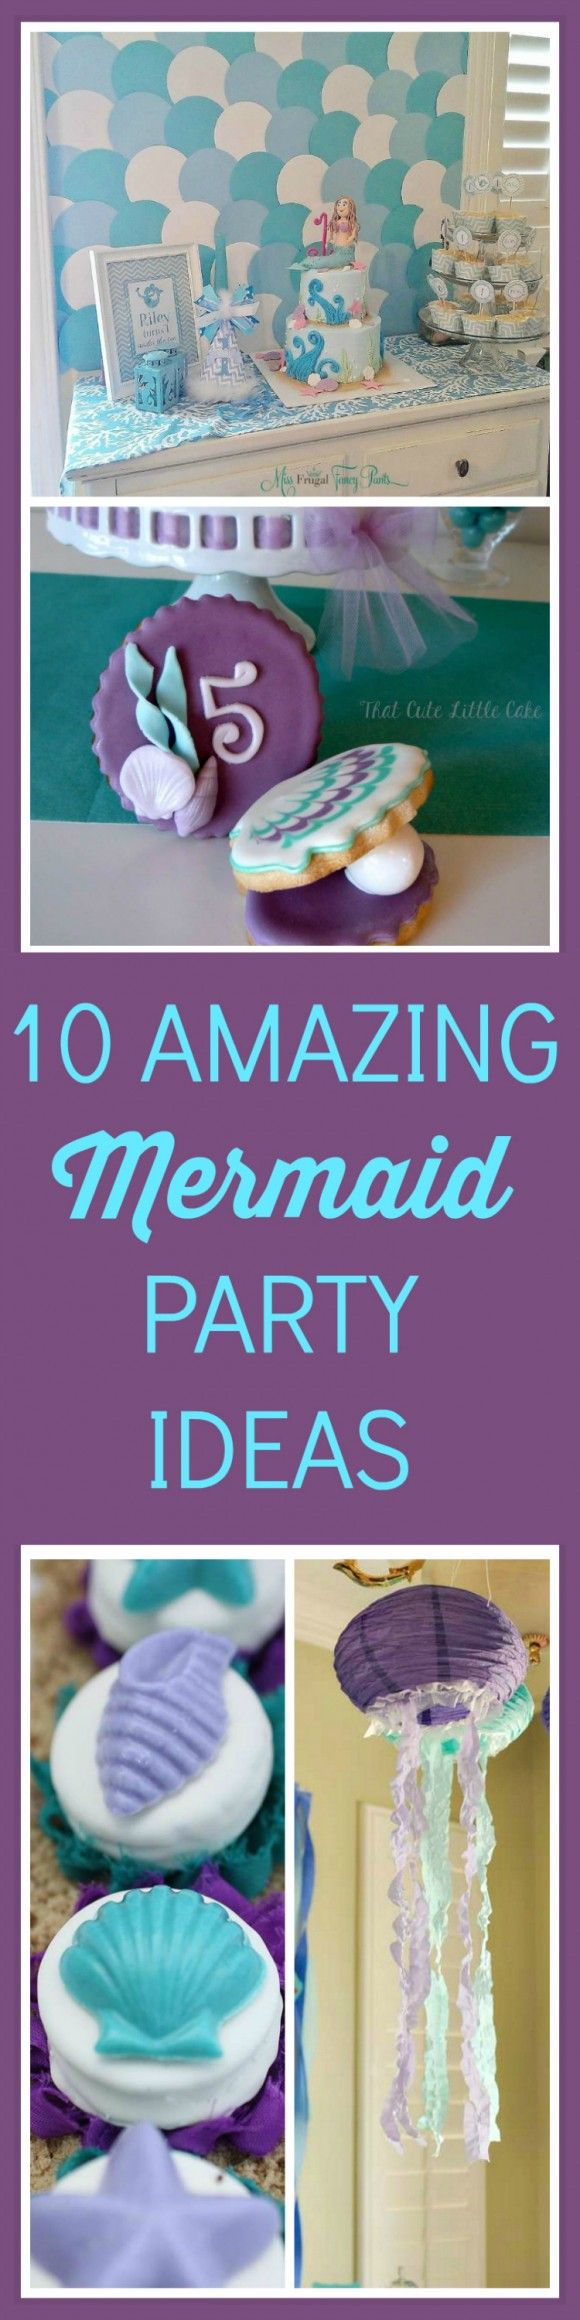 If you are throwing a mermaid party, you must see this post. Ten must-haves including birthday cake ideas, party decorations, cupcakes, and many DIY ideas. If you need more mermaid or under the sea party planning inspirations check out CatchMyParty.com.